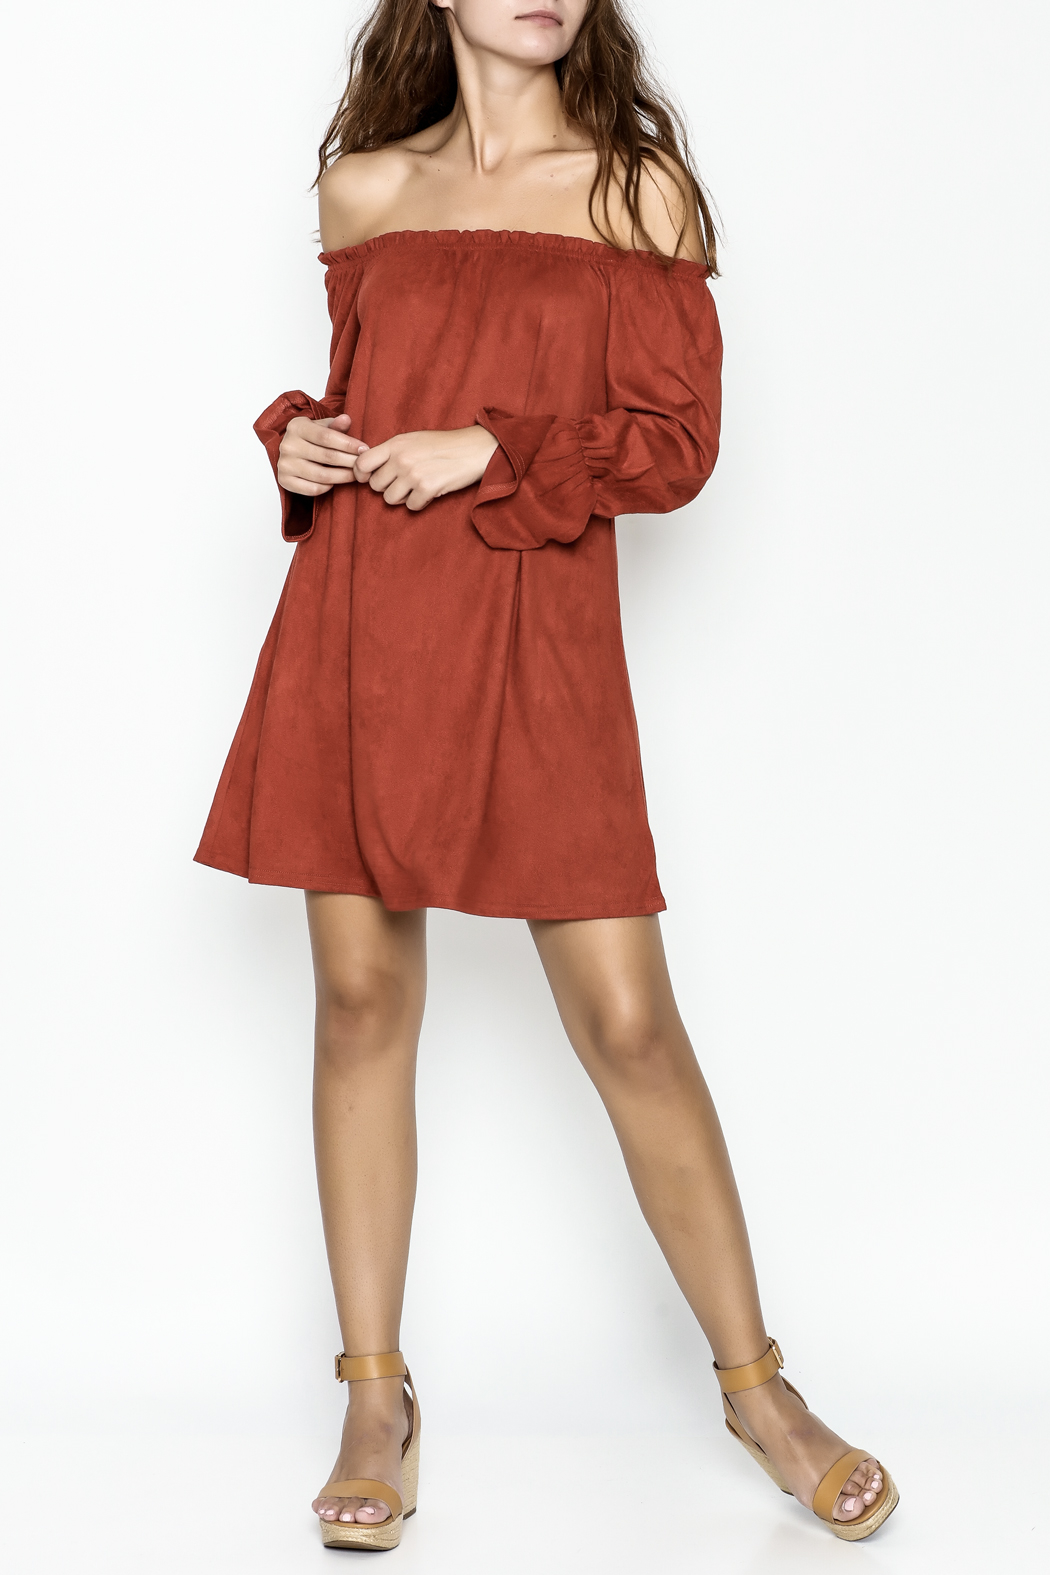 Very J Rust Bell Sleeve Dress - Side Cropped Image